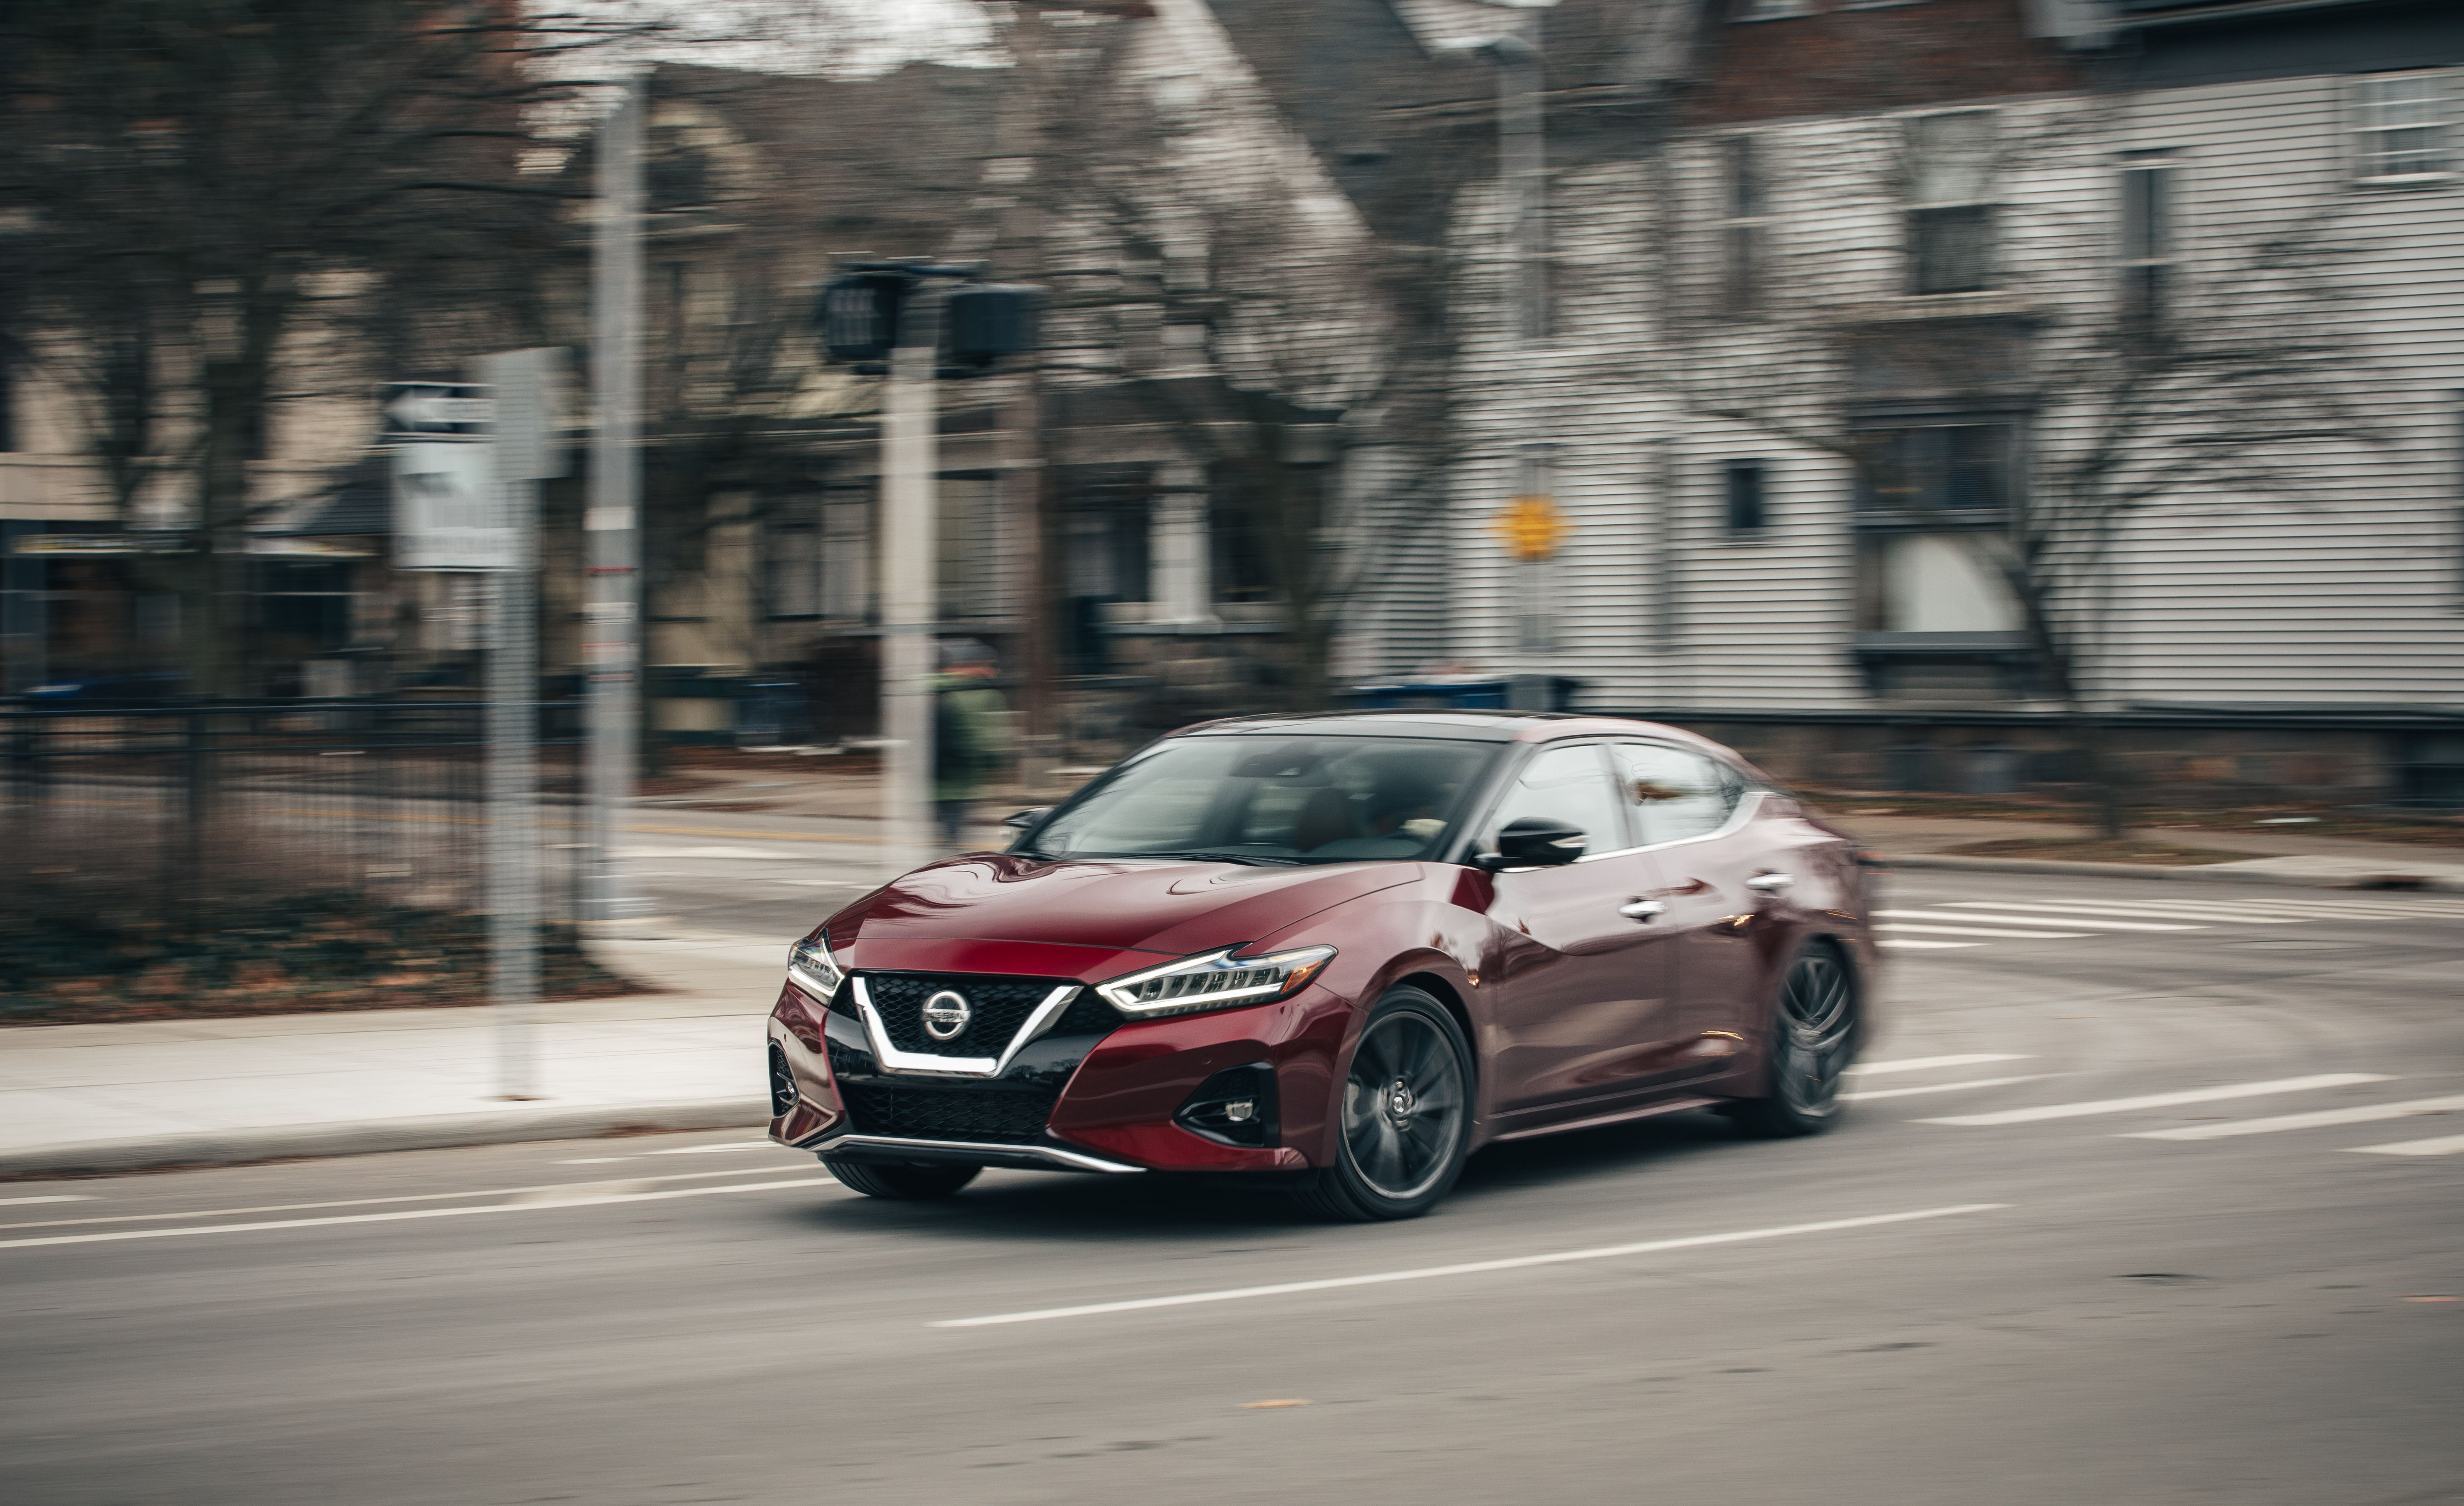 2019 Nissan Maxima Reviews Nissan Maxima Price Photos And Specs